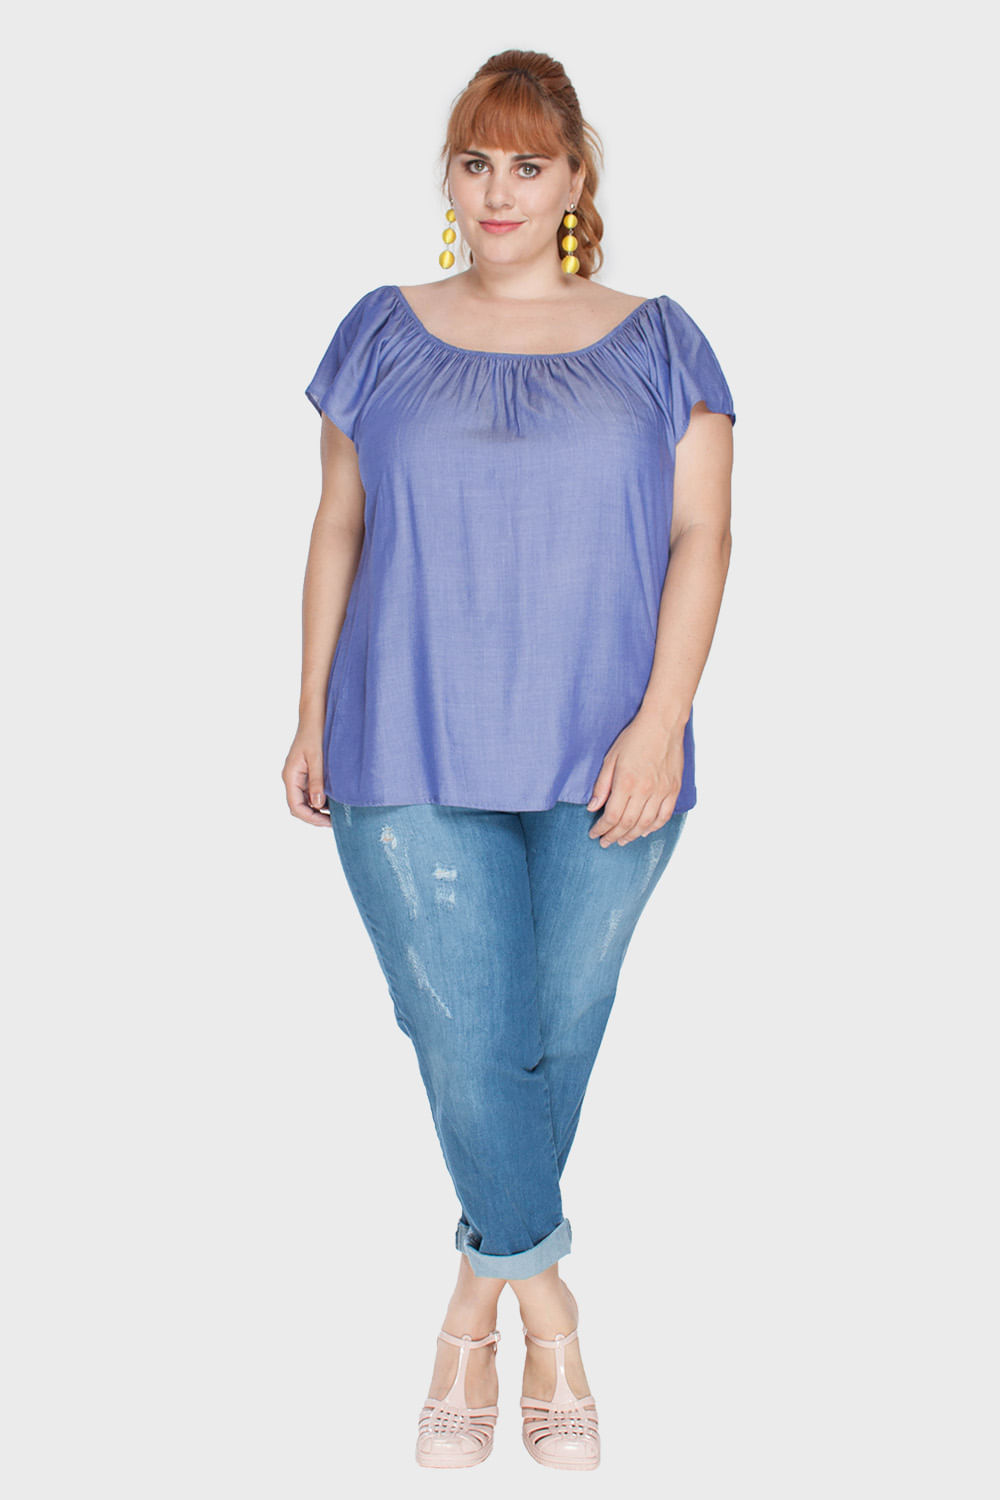 Blusa-Ombro-a-Ombro-Jeans-Plus-Size_4